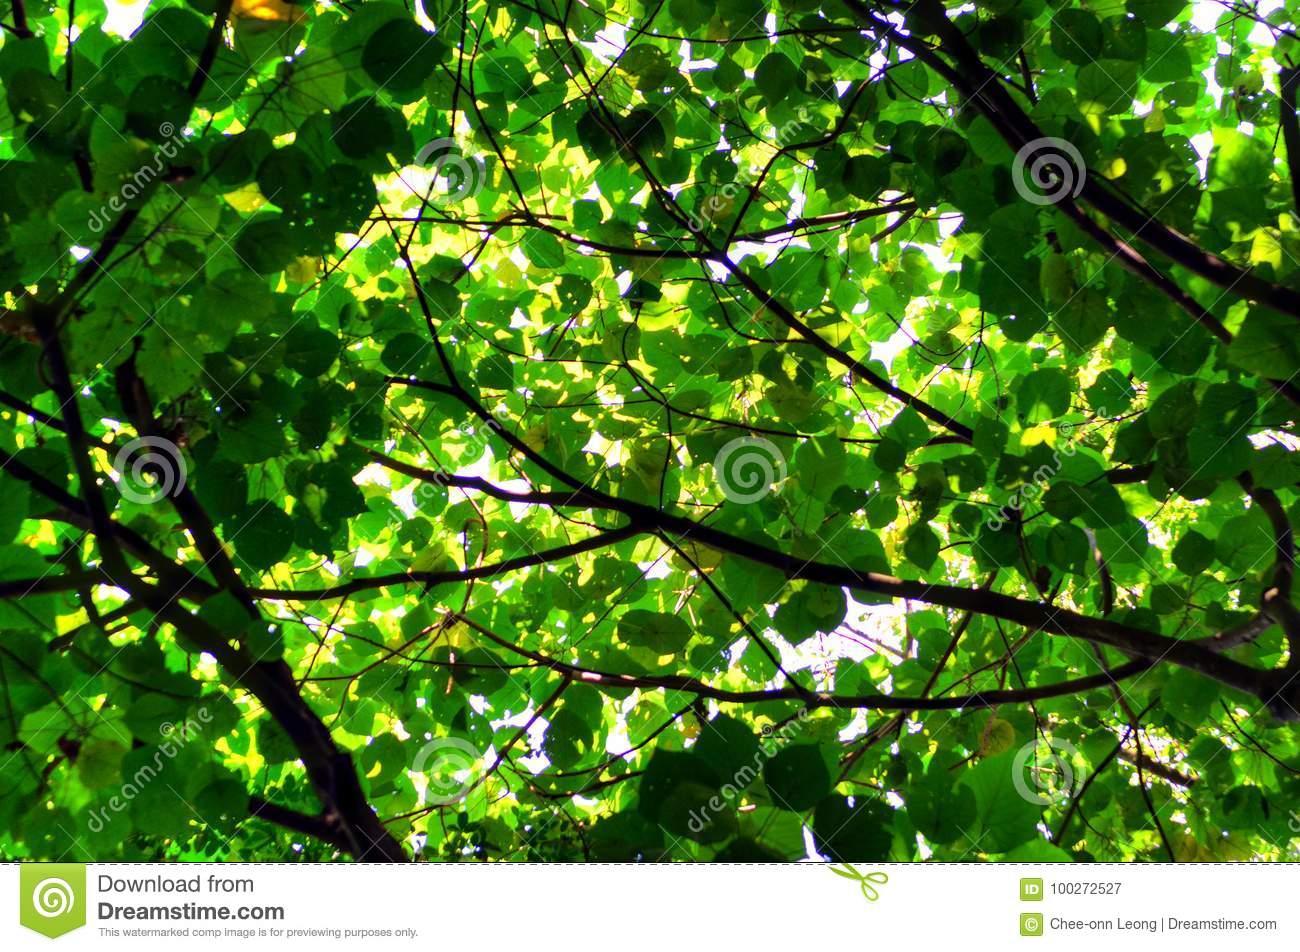 Tree leaf and sun light abstract background